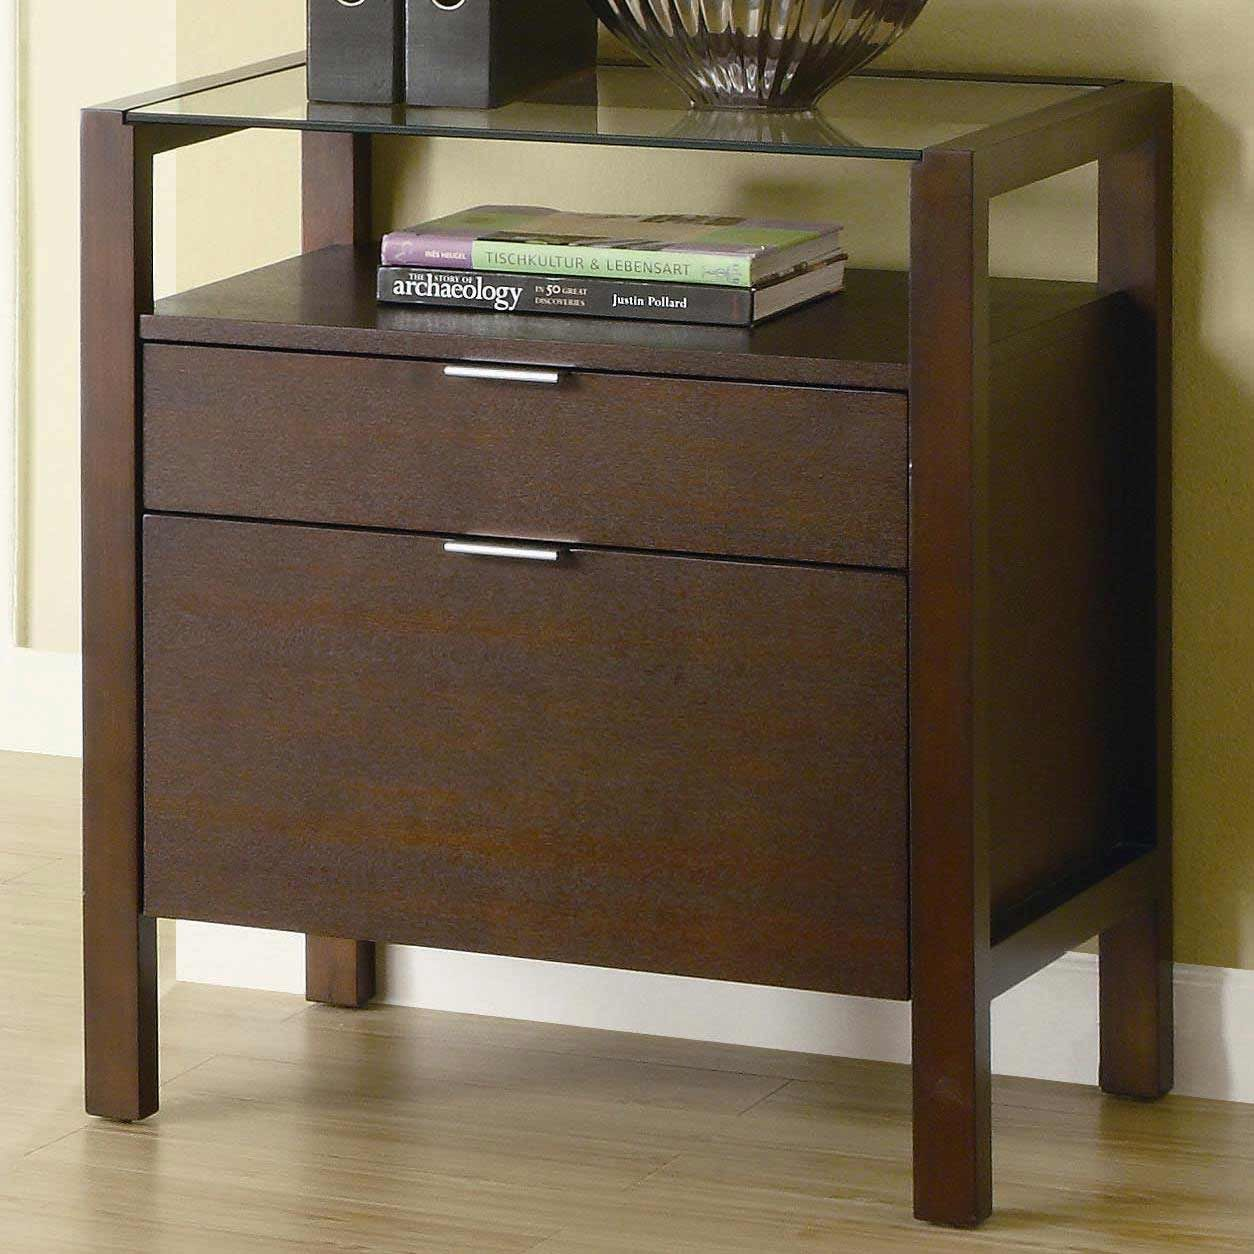 2018 Decorative File Cabinets For Home Office Furniture Check More At Http